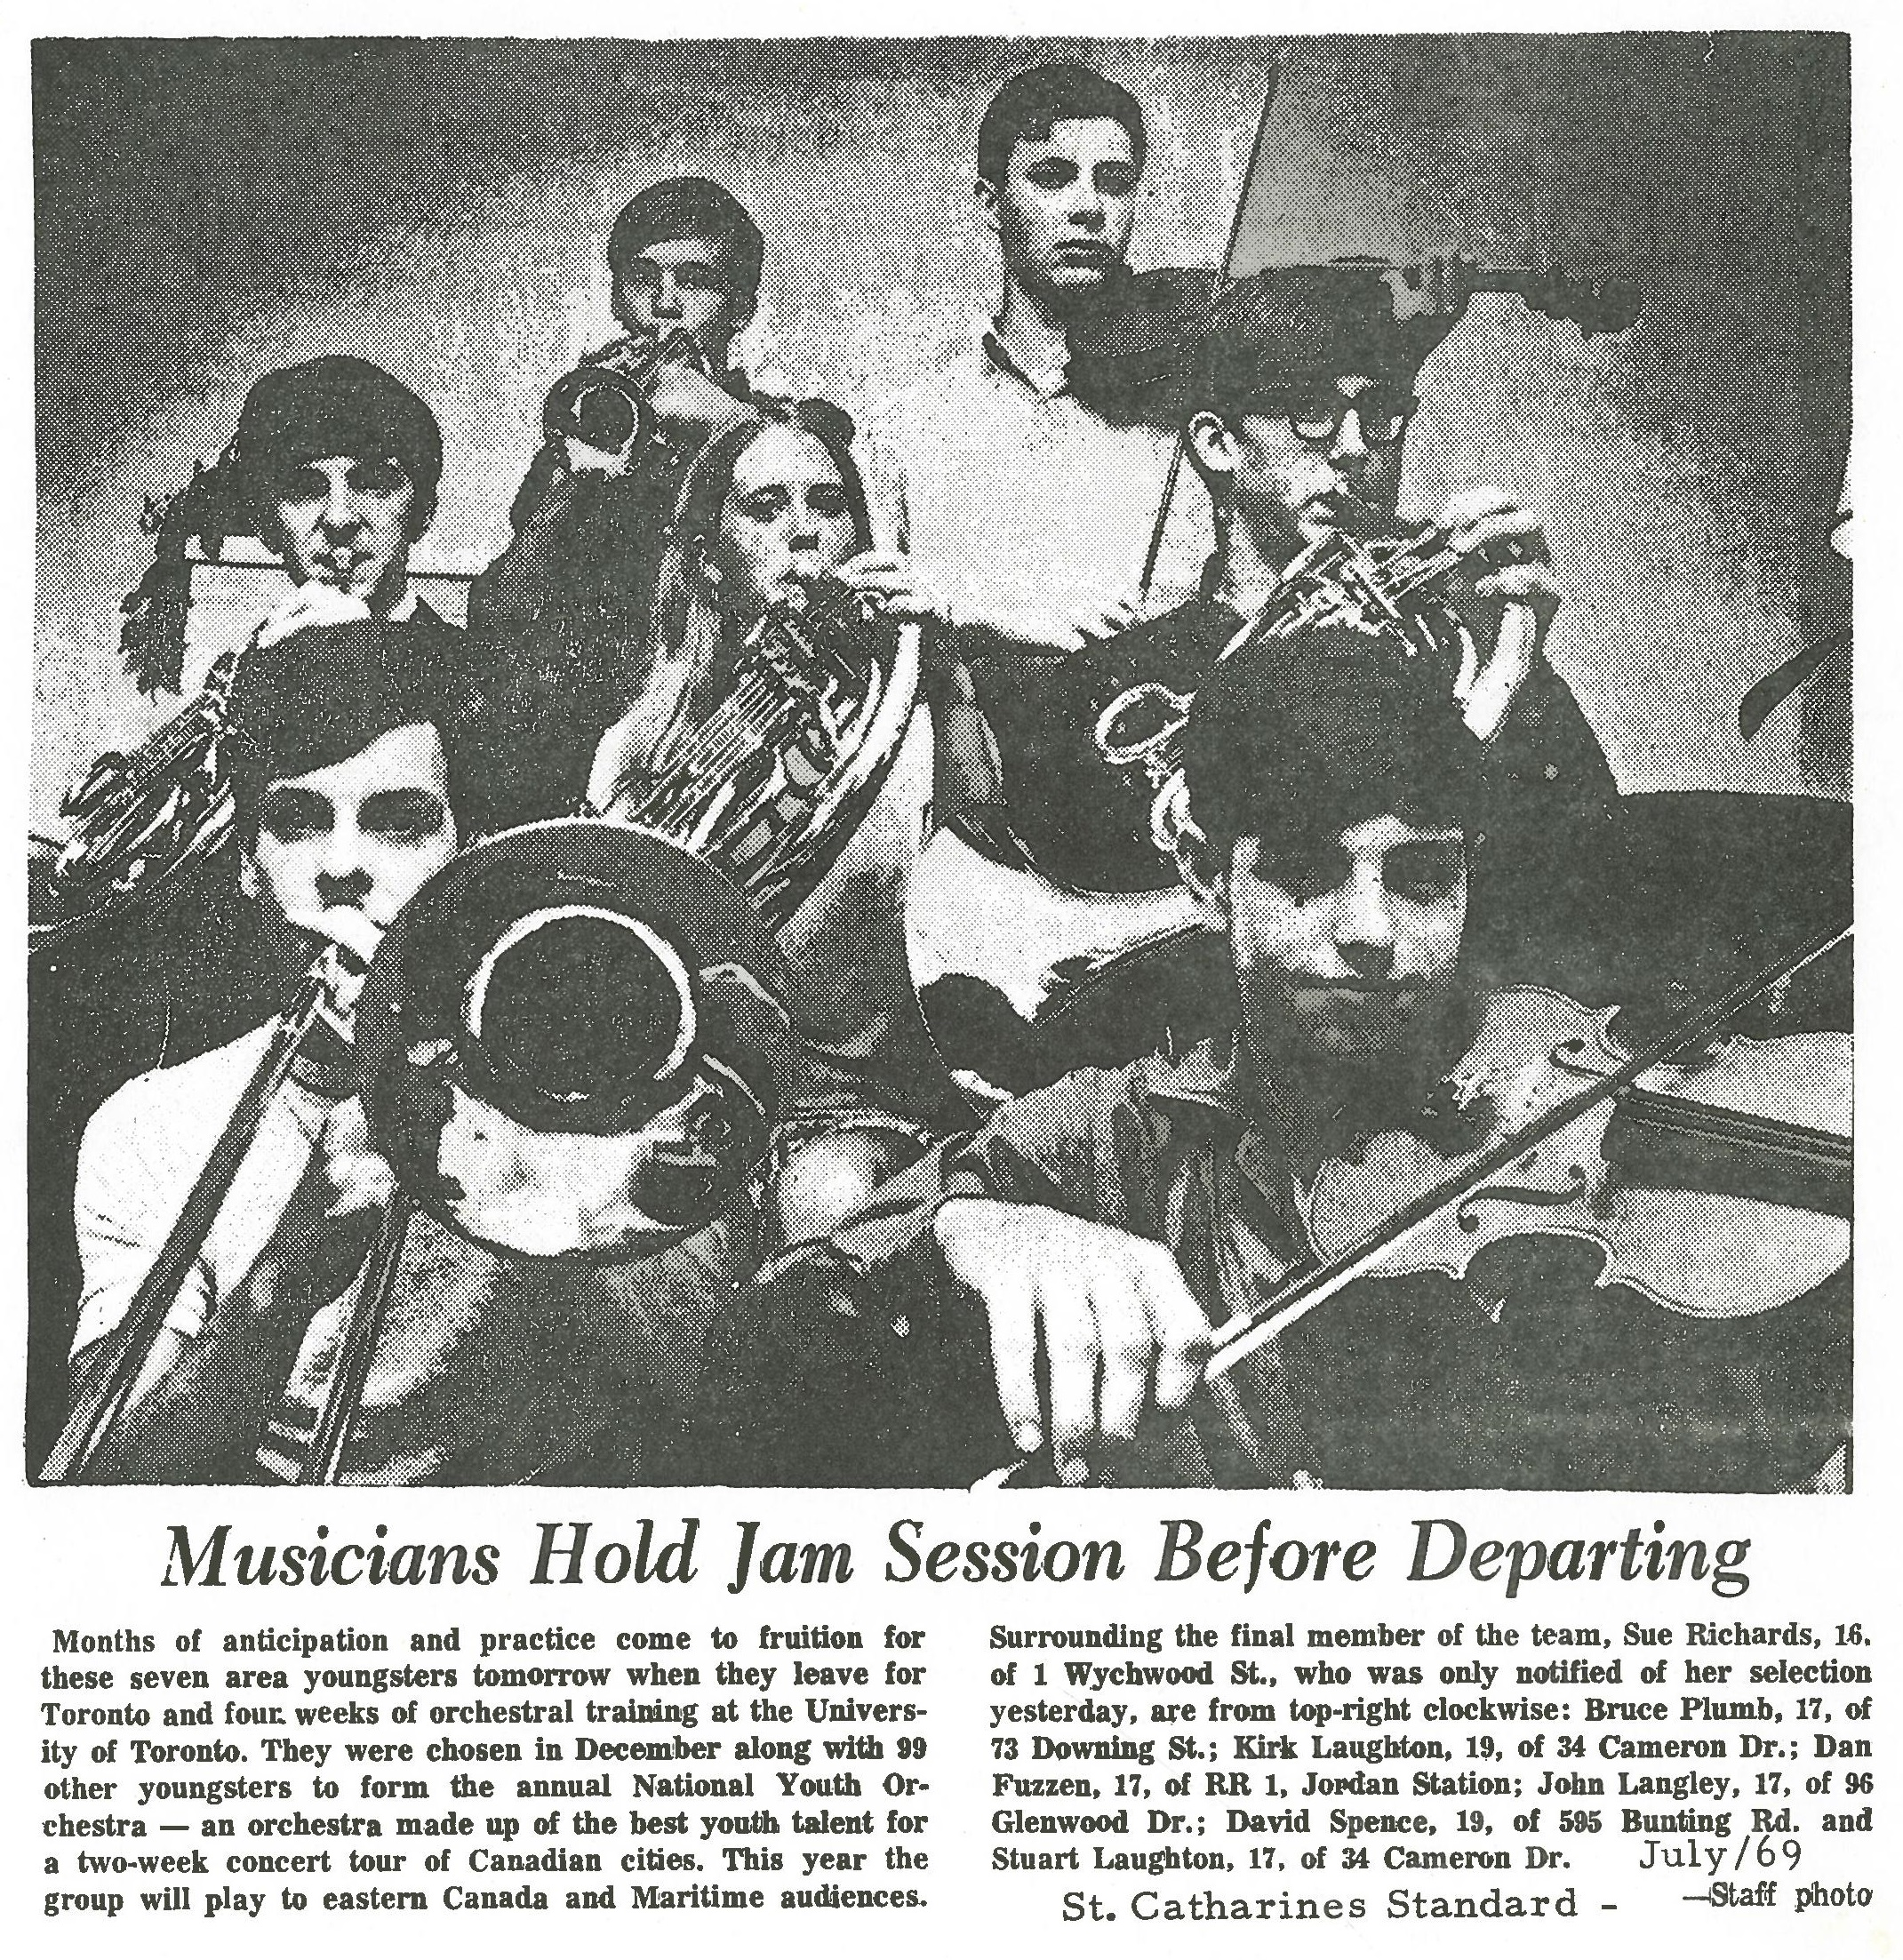 """7 students chosen for national youth orchestra playing instruments. Newspaper article titled """"Musicians Hold Jame Session Before Departing"""""""